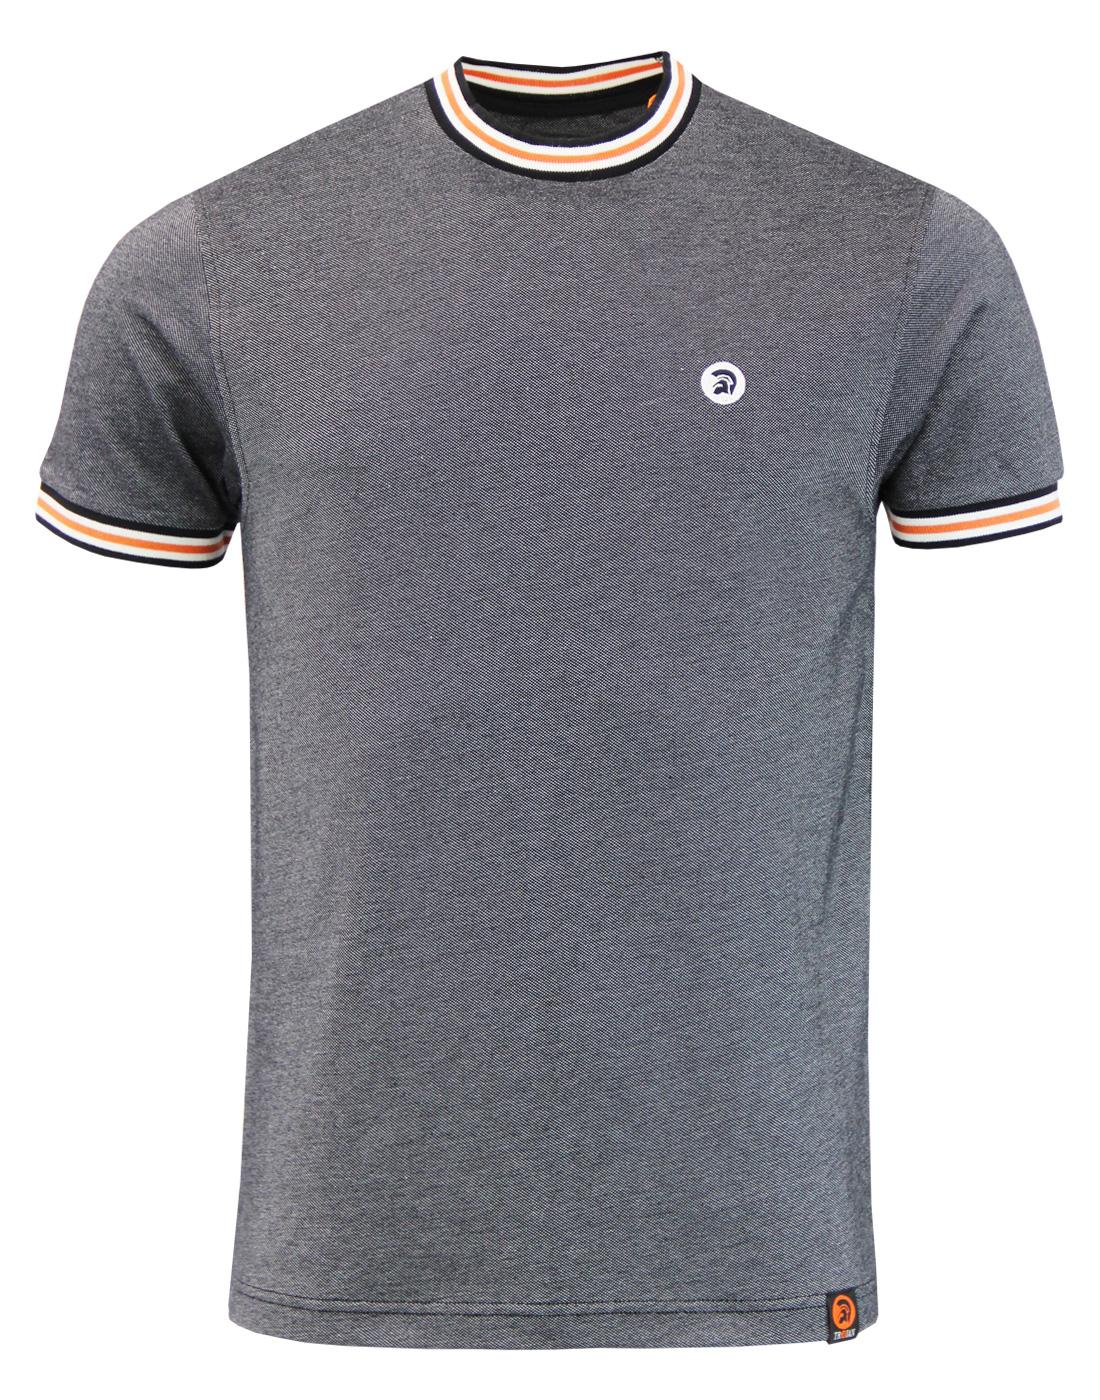 TROJAN RECORDS Retro Tipped Oxford Pique T-Shirt